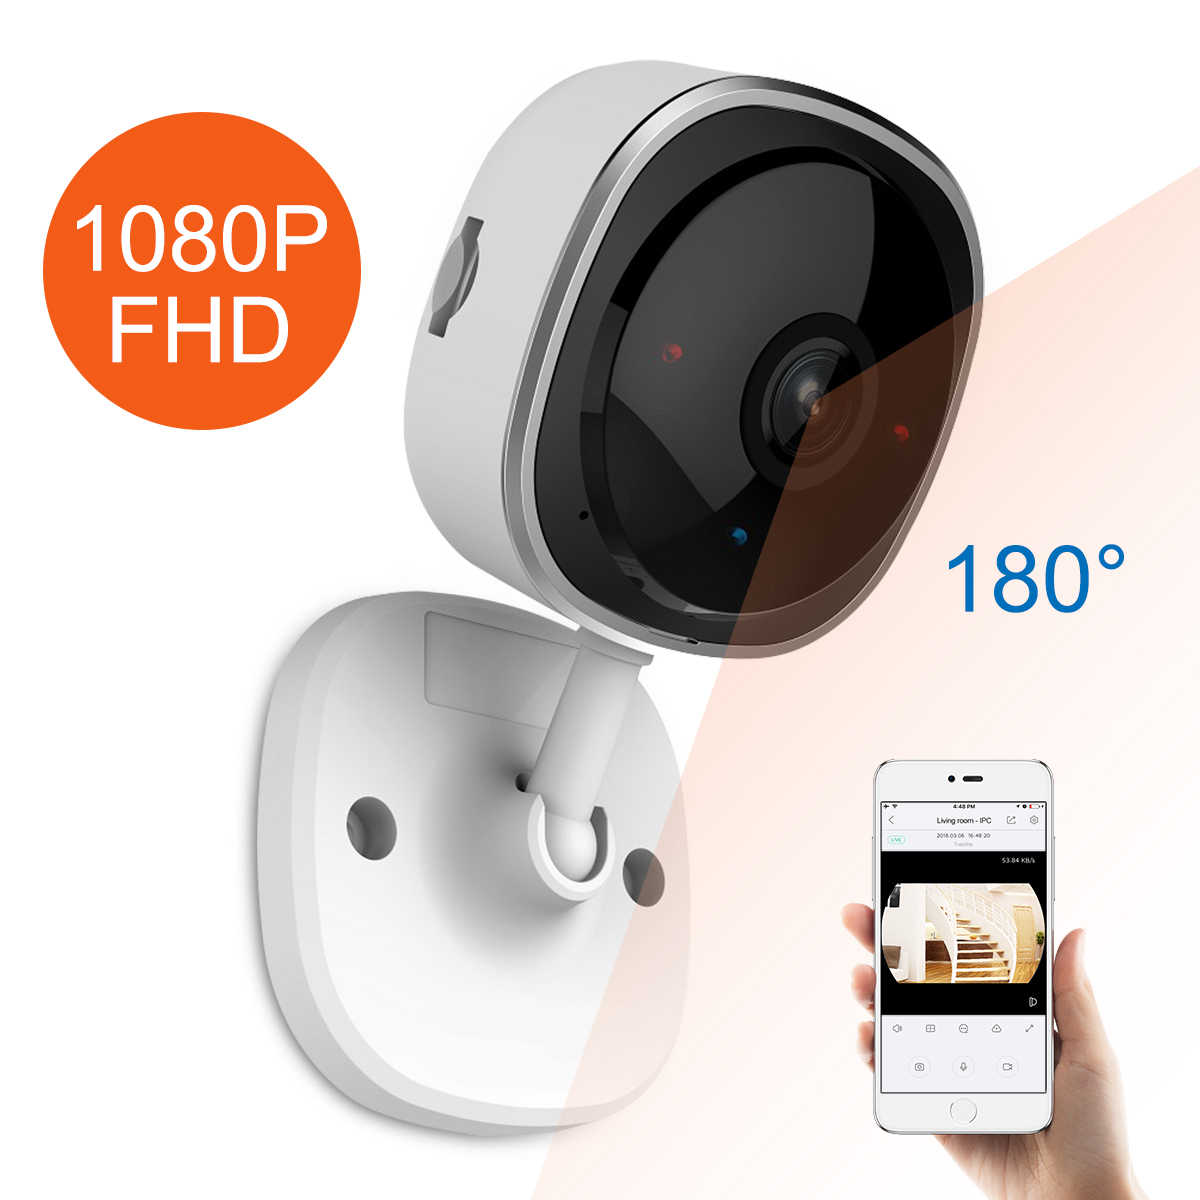 Sannce Hd 1080P Fisheye Ip Camera Draadloze Wifi Mini Netwerk Camara Nachtzicht Ir Cut Home Security Camara Wifi babyfoon